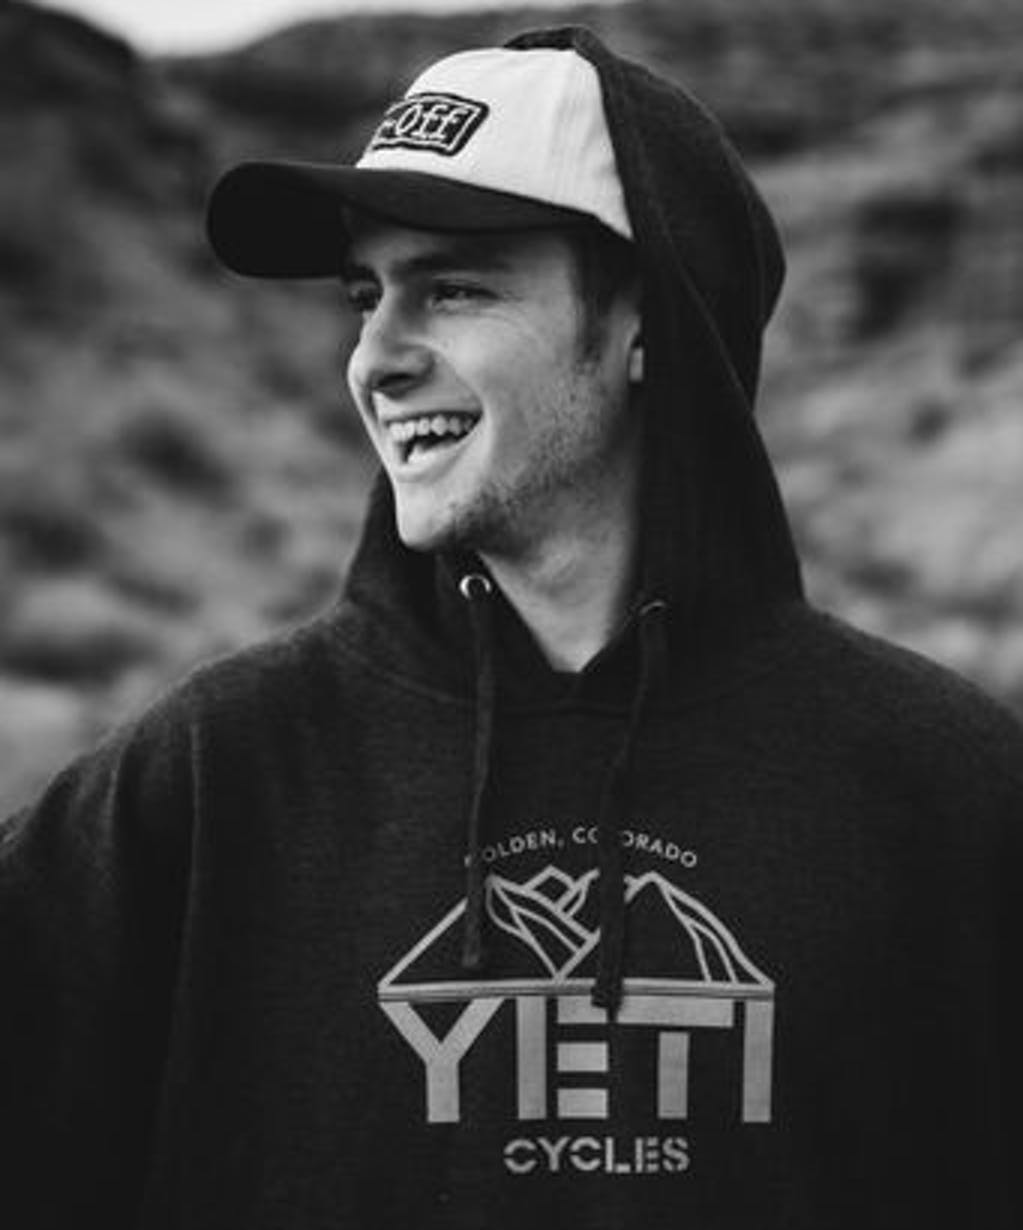 Reed Boggs welcome to Yeti